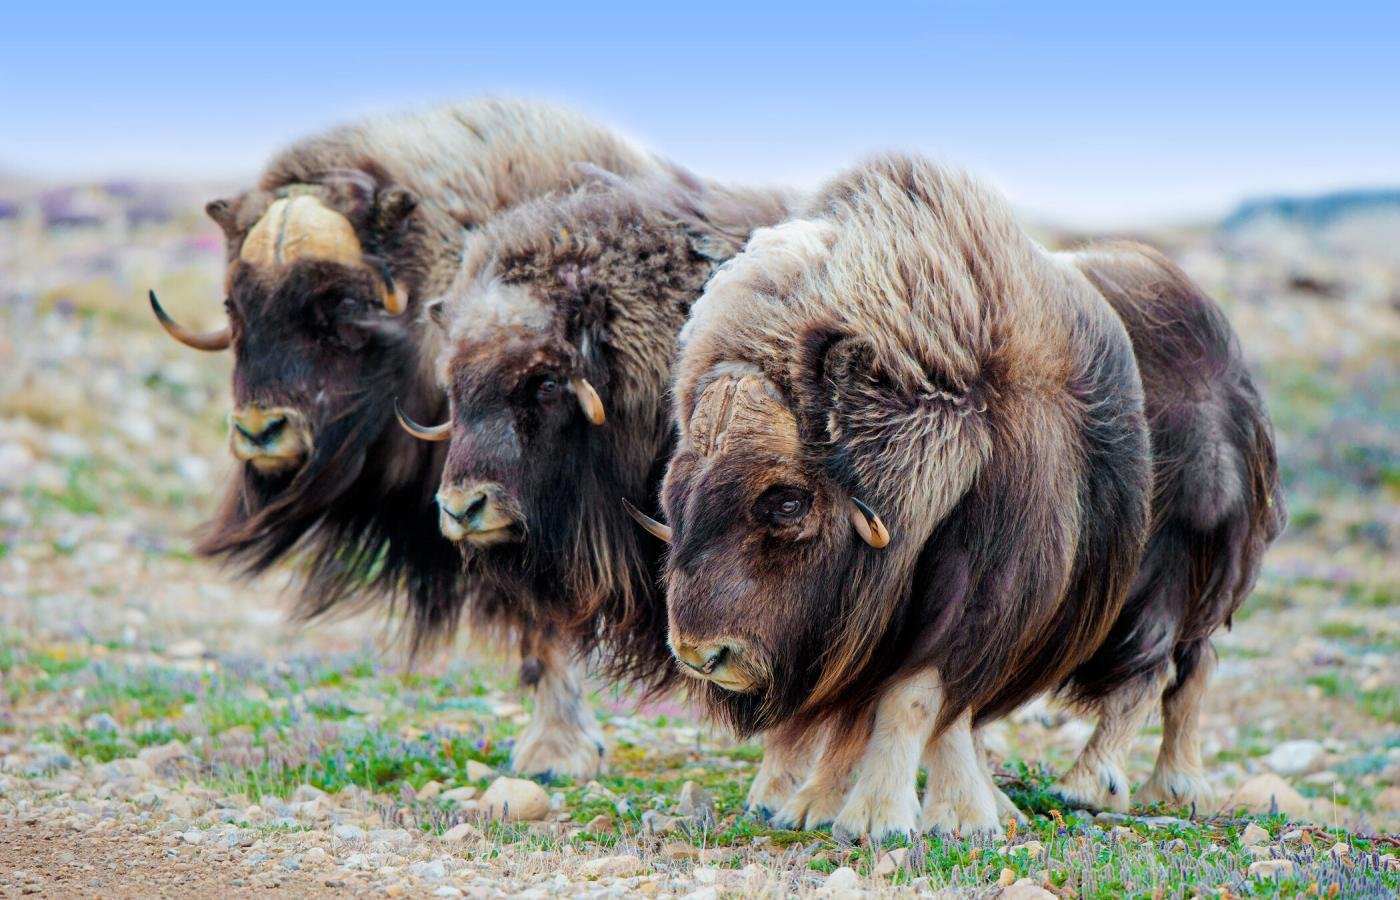 muskoxen on the barrengrounds